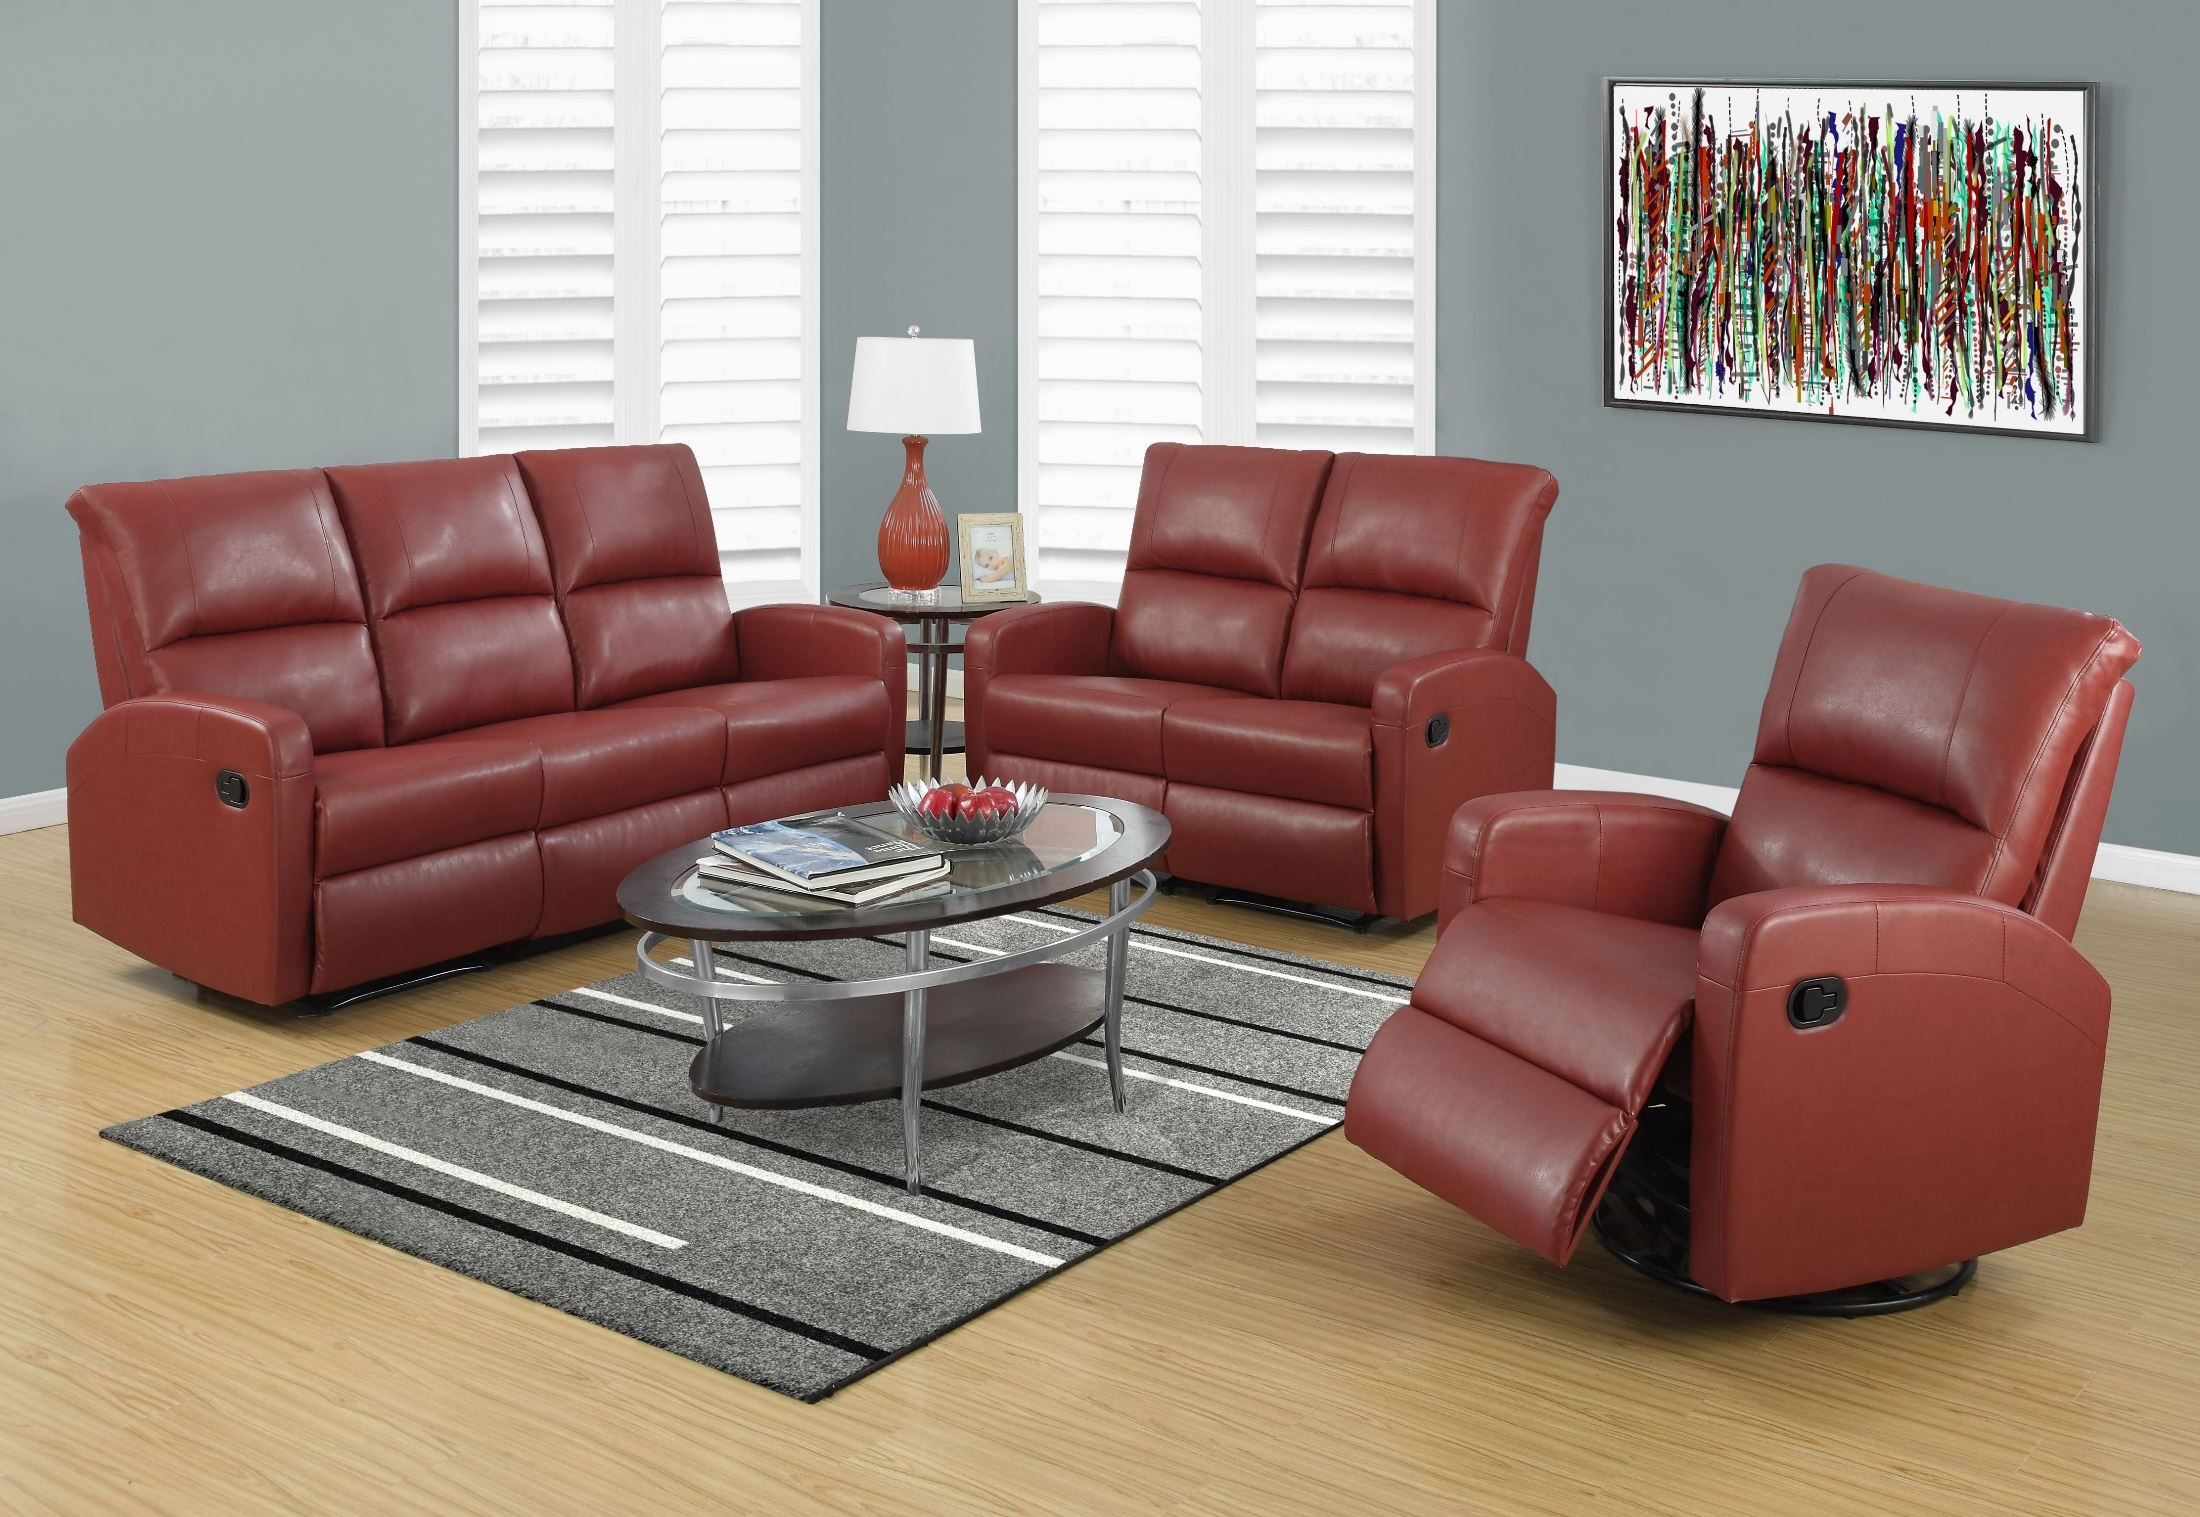 Bonded Leather All In One Sectional Sofas With Ottoman And 2 Pillows Brown Pertaining To Most Popular Red Bonded Leather Reclining Sofa From Monarch (View 9 of 25)